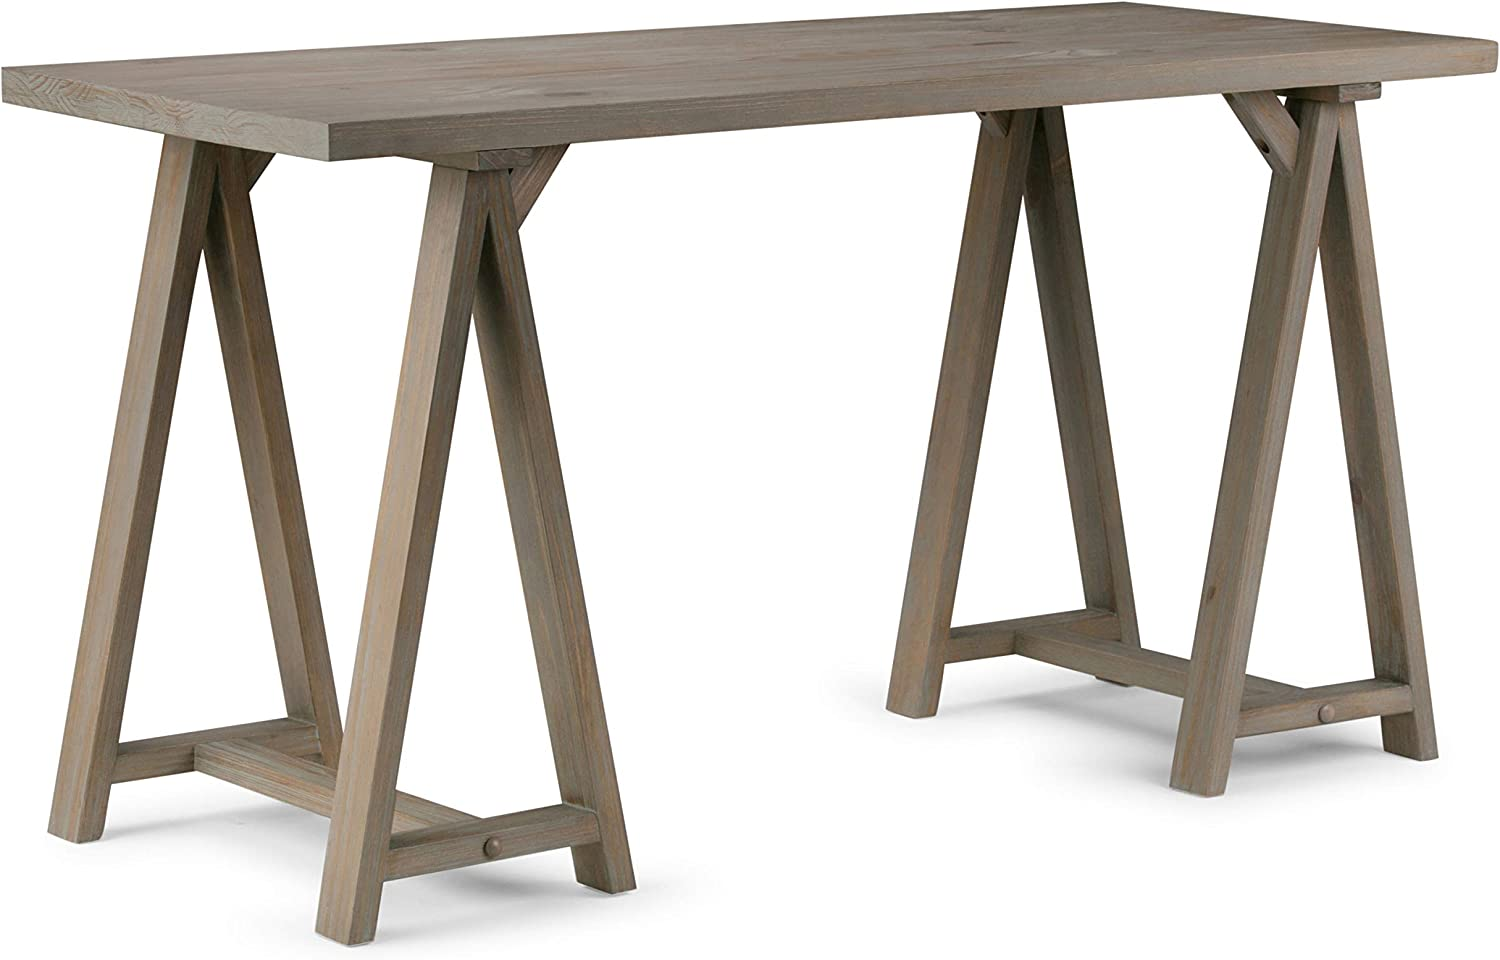 SIMPLIHOME Sawhorse SOLID WOOD Industrial Contemporary 56 inch Wide Home Office Desk, Writing Table, Workstation, Study Table Furniture in Distressed Grey